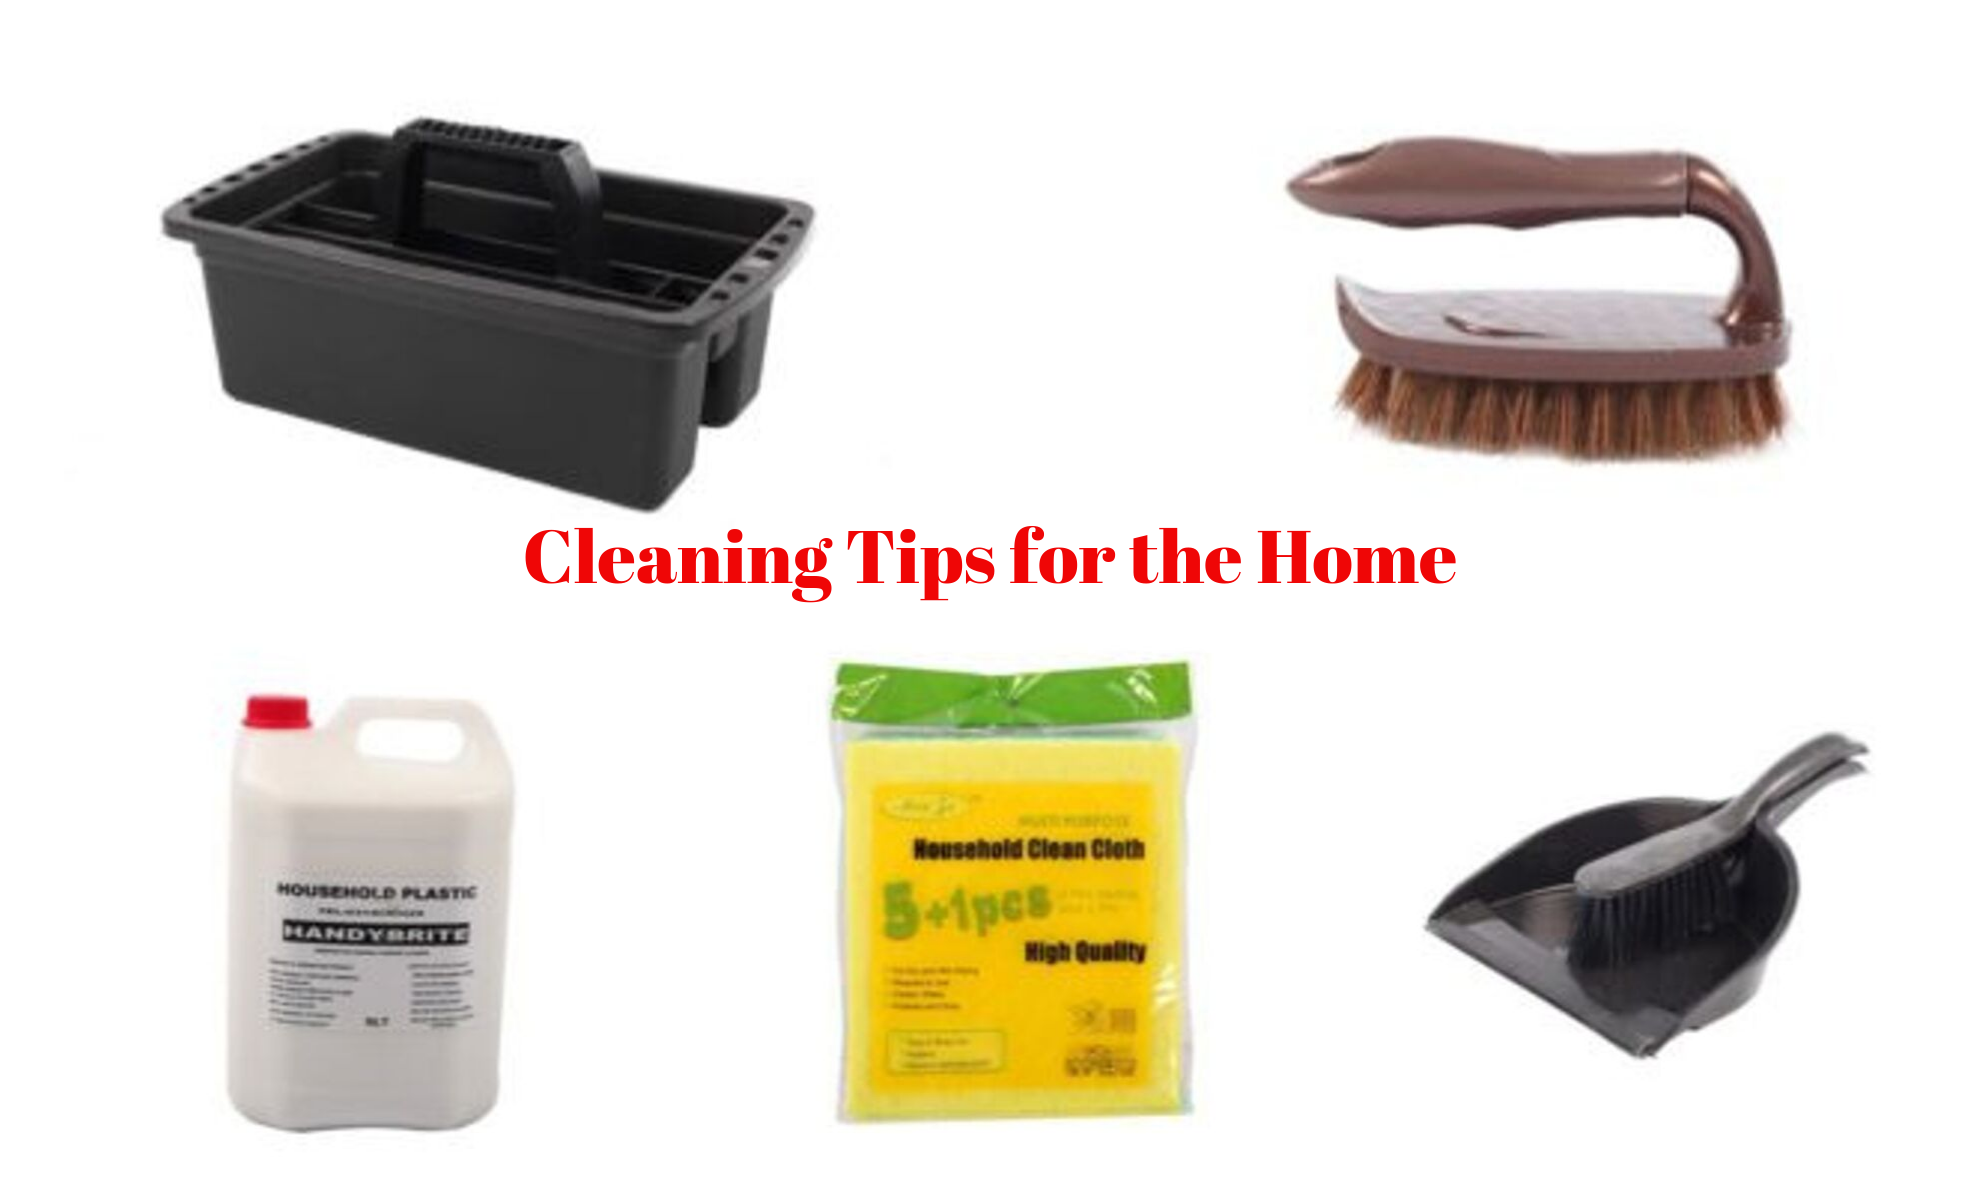 Best Cleaning Tips for the Home